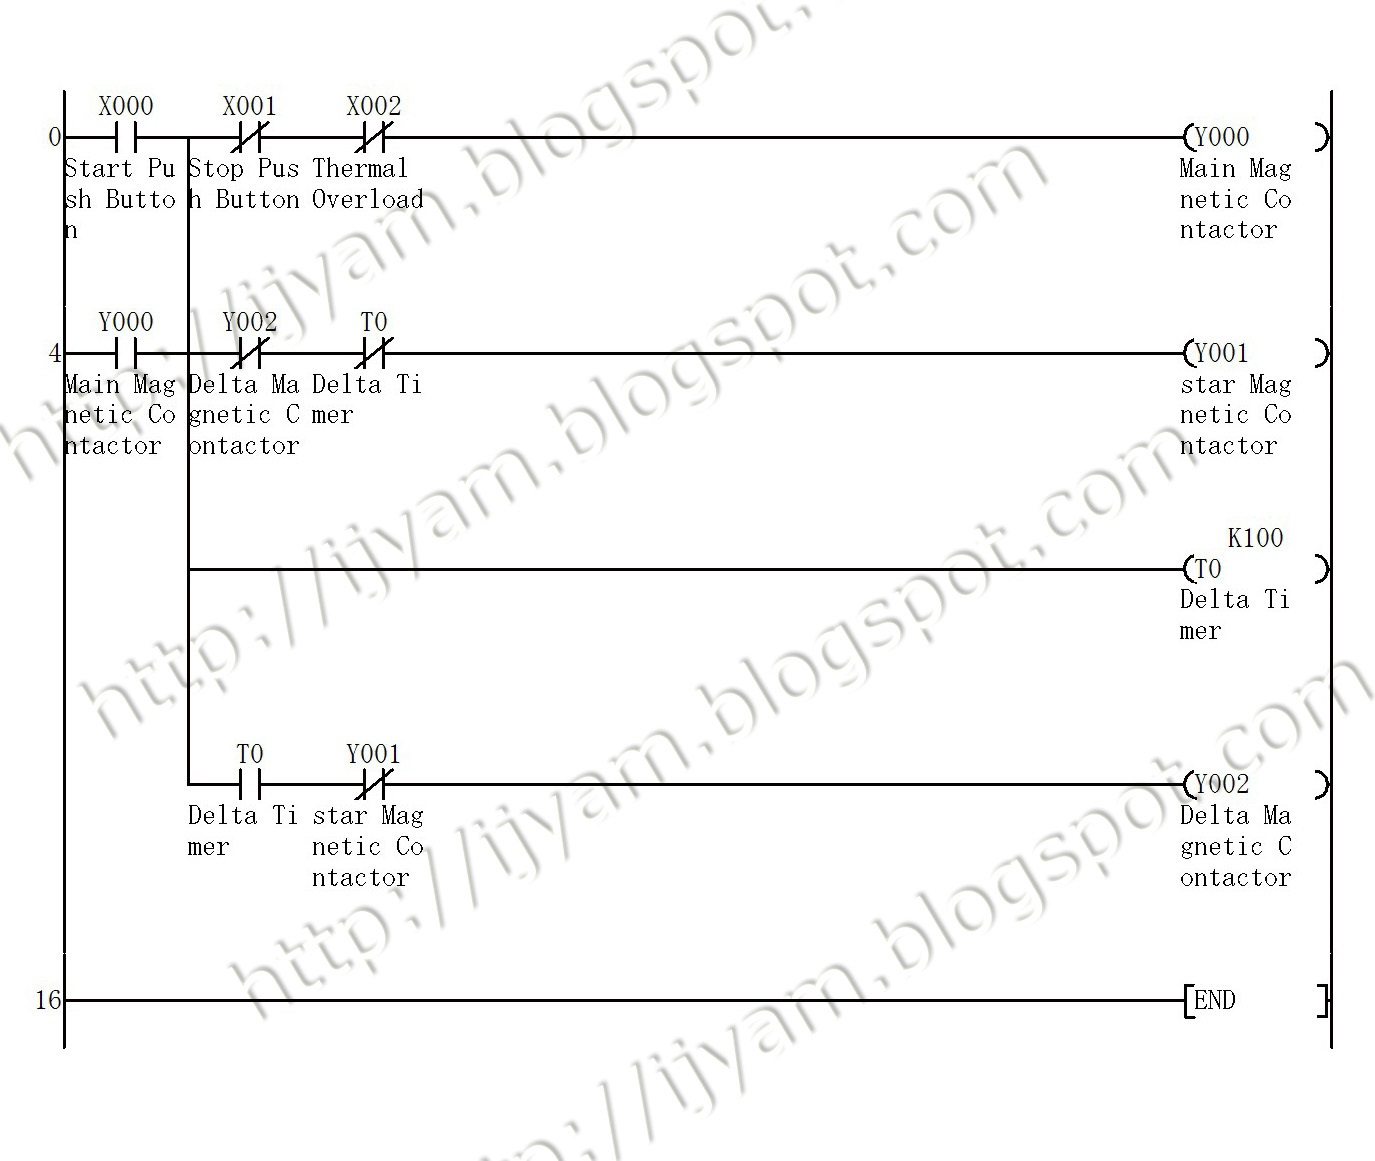 electrical wiring diagram star delta control and power